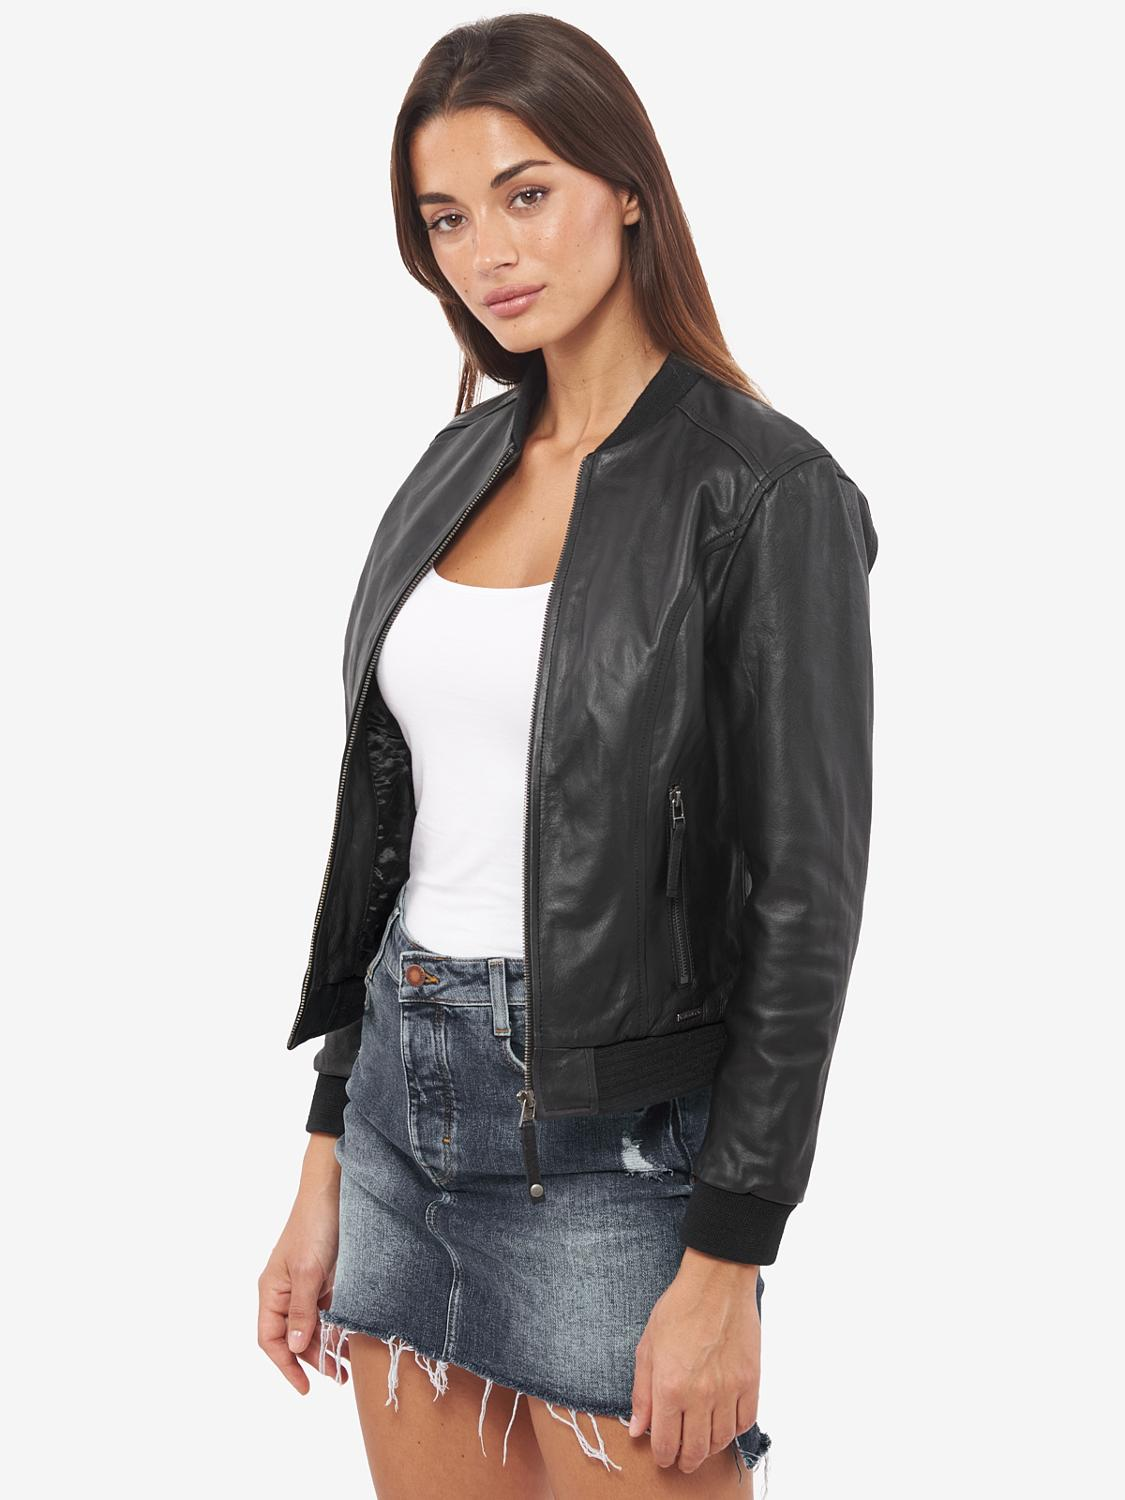 VAINAS European Brand  Women Genuine Buffalo Leather Jacket For Women Real Leather  Motorcycle Jackets Biker Jackets Niovi